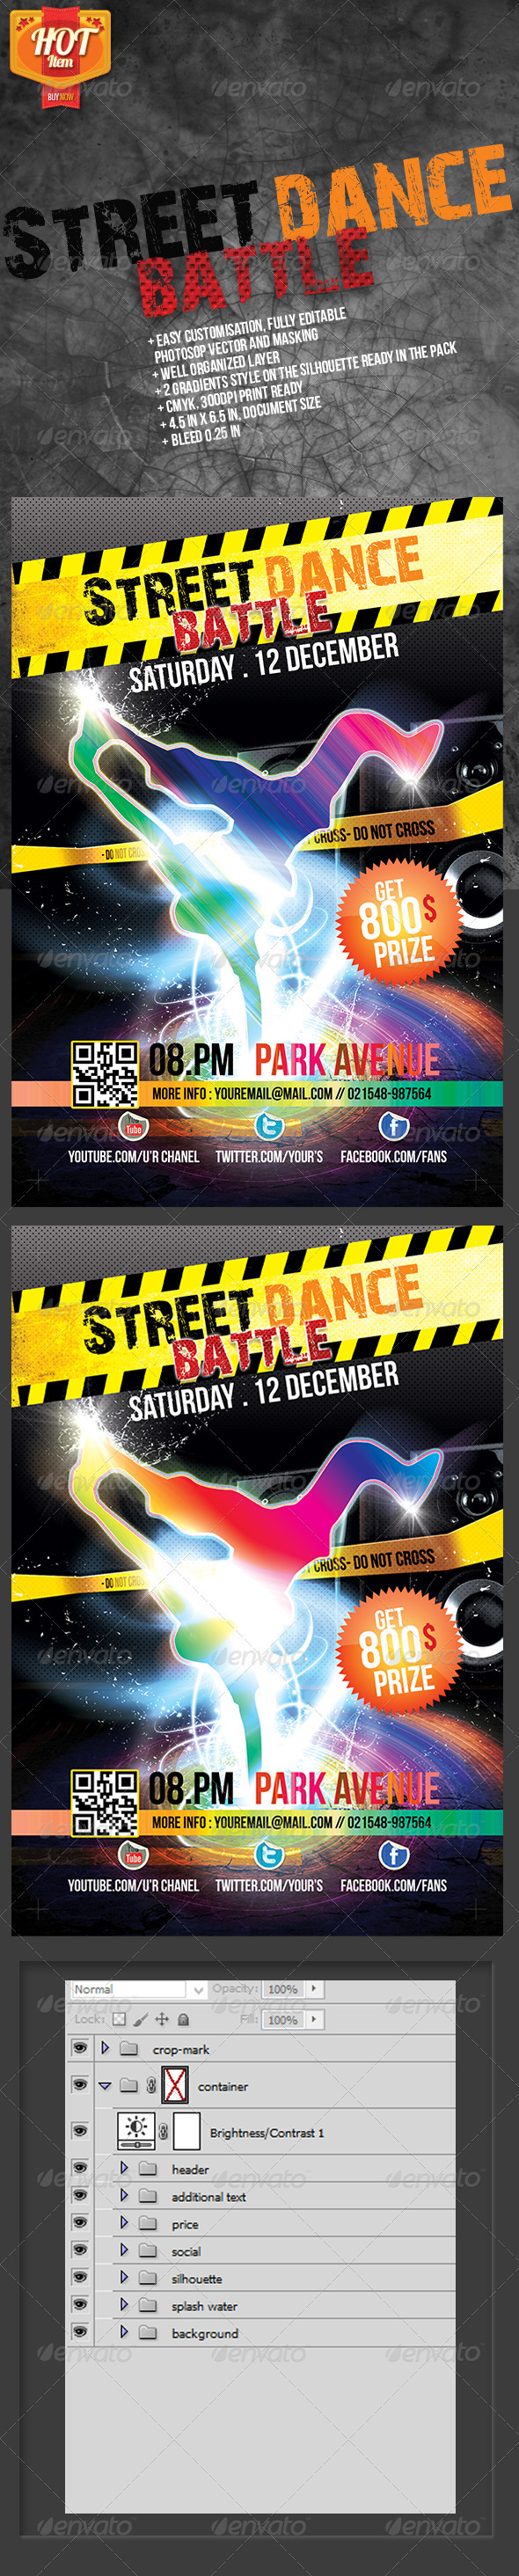 Street Dance Battle - Events Flyers